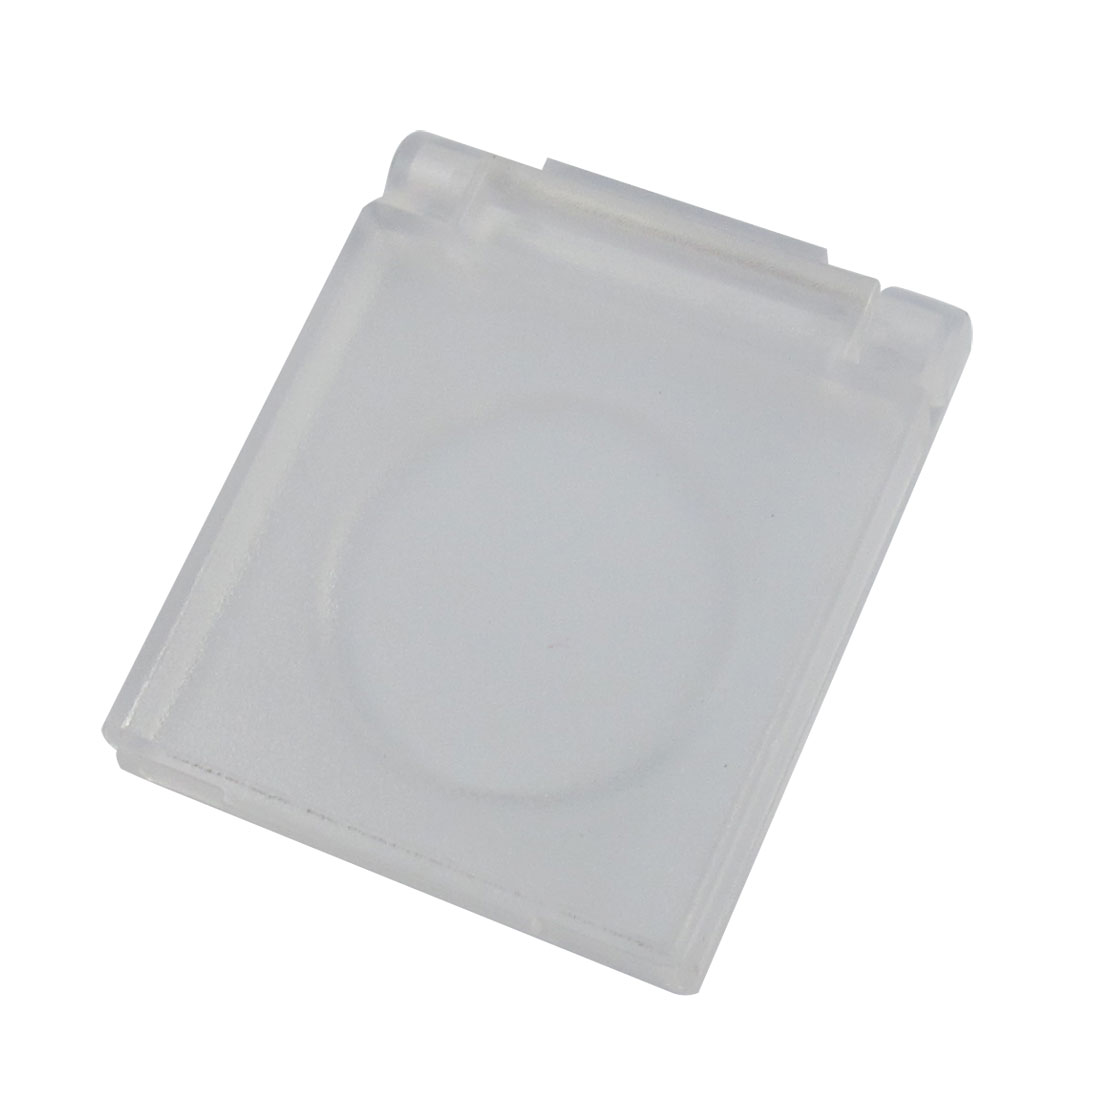 Round Push Button Switch Clear Plastic Protective Cover Guard